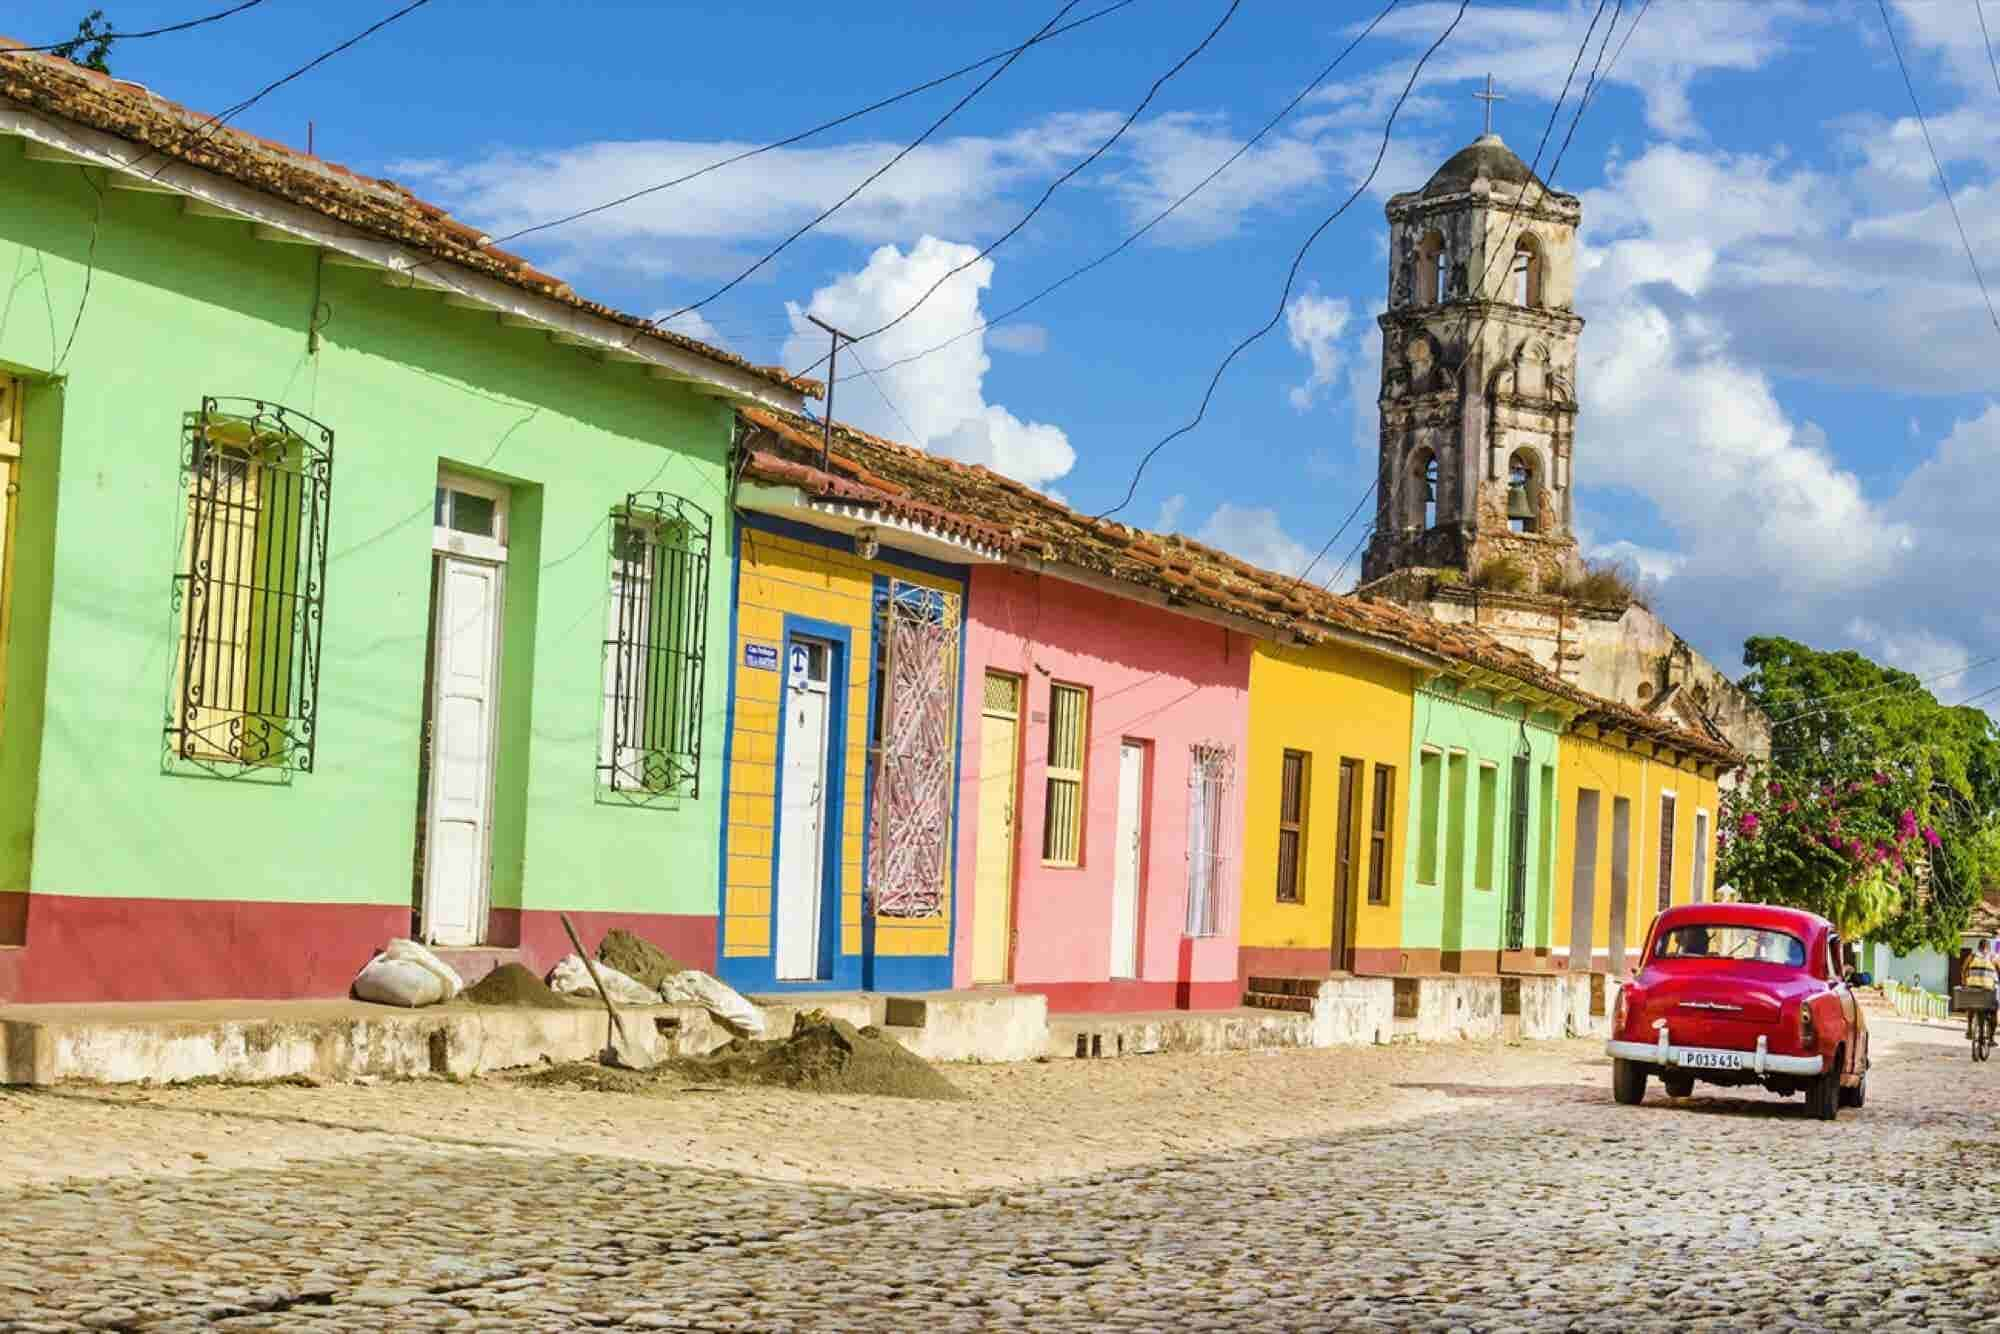 Headed to Cuba for Business? ¡Cuidado!